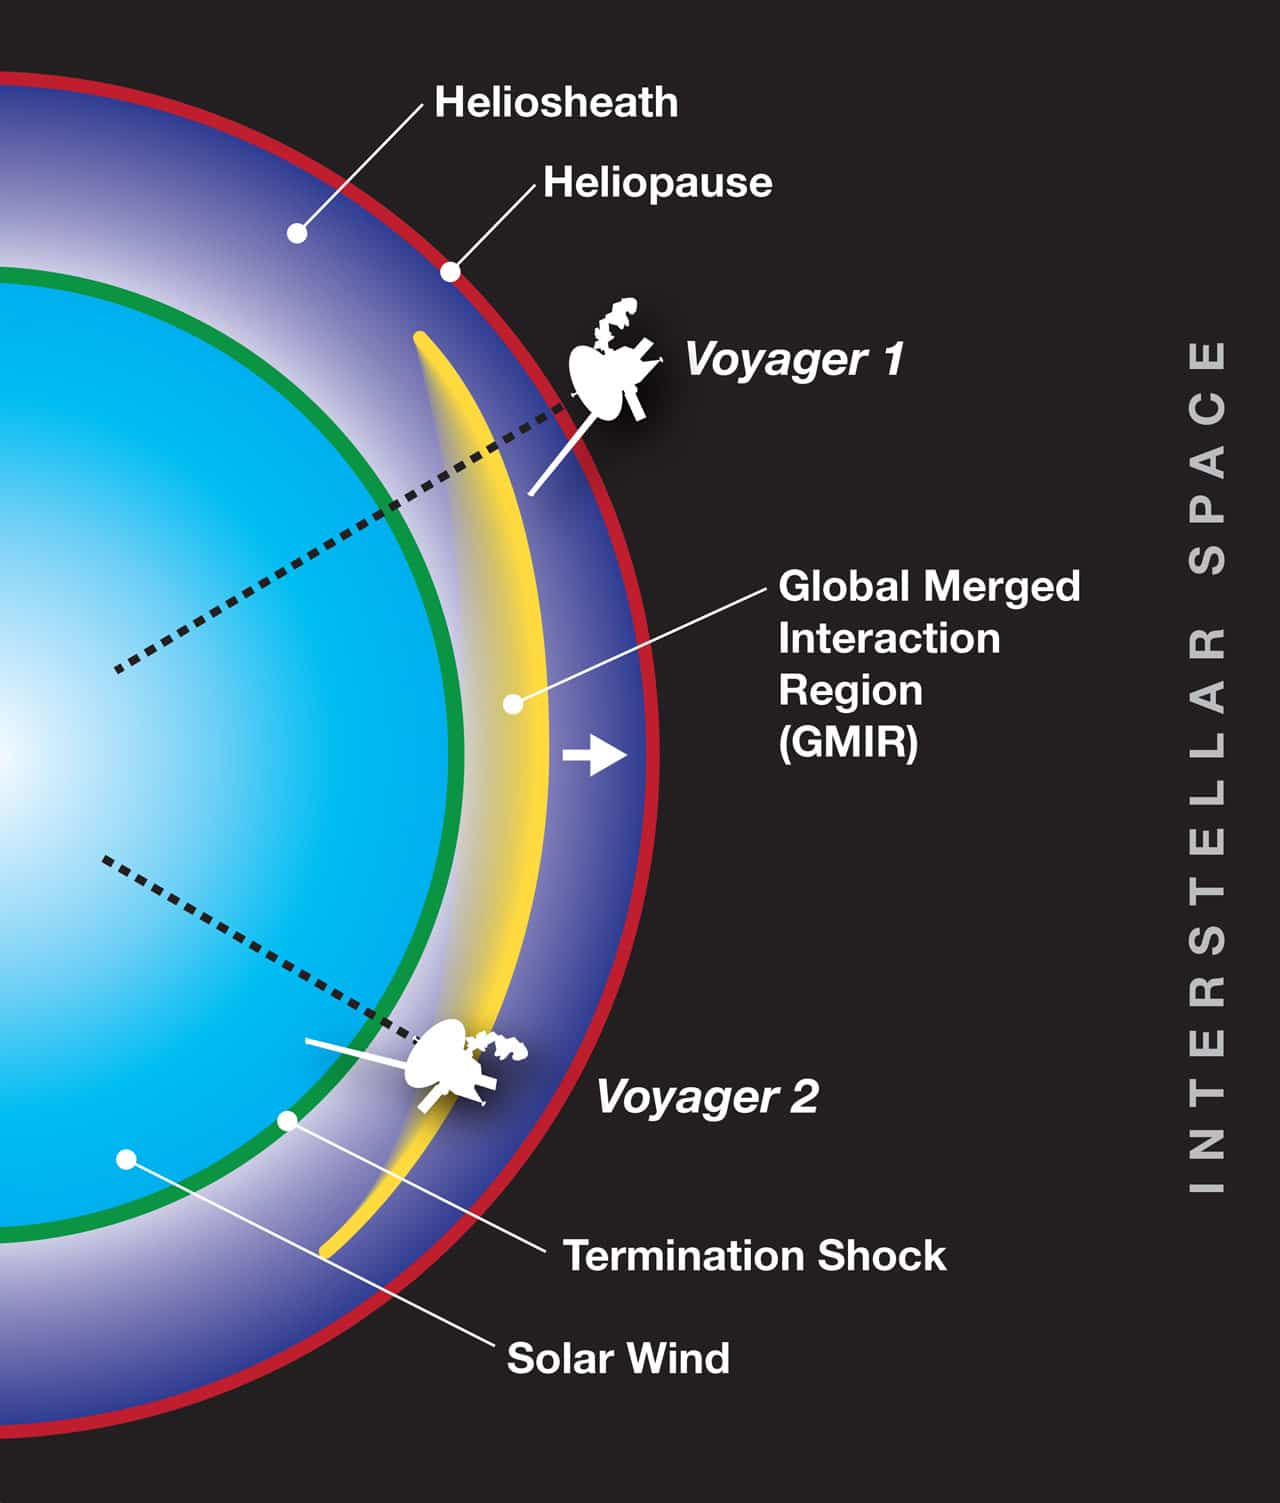 The Voyager spacecraft, one in the heliosheath and the other just beyond in interstellar space, took measurements as a solar even known as a global merged interaction region passed by each spacecraft four months apart. These measurements allowed scientists to calculate the total pressure in the heliosheath, as well as the speed of sound in the region. Credits: NASA's Goddard Space Flight Center/Mary Pat Hrybyk-Keith